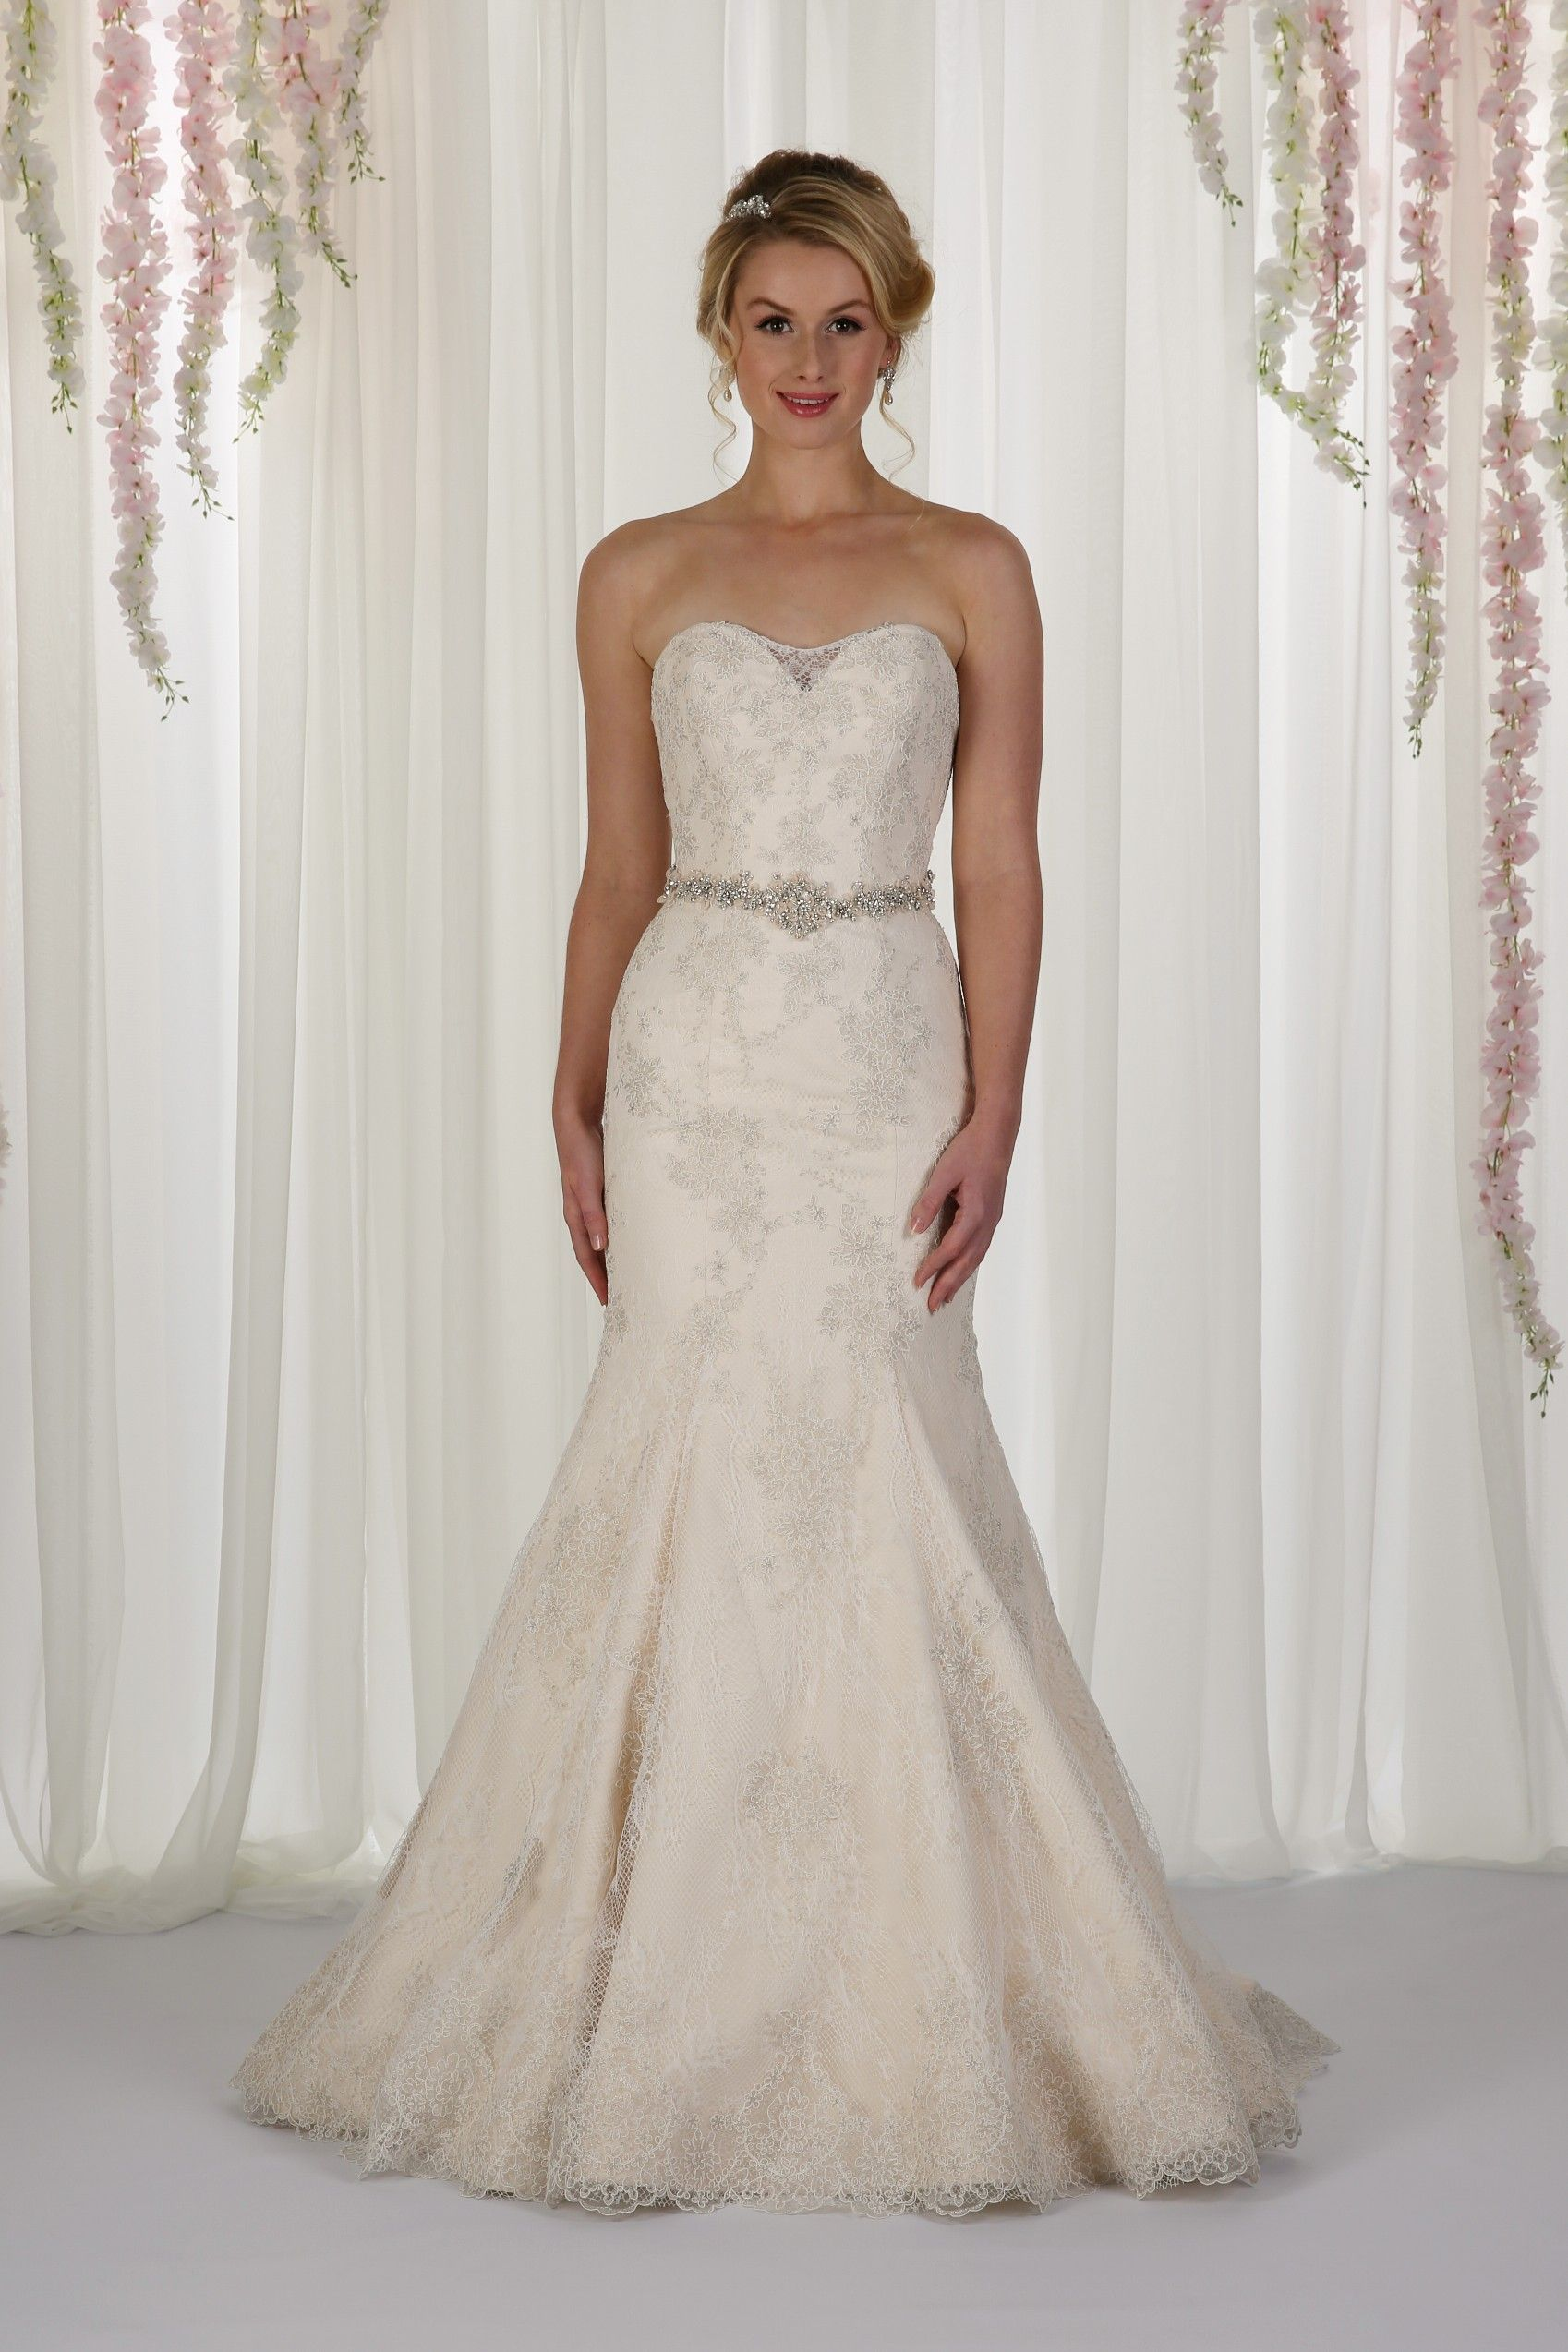 bbbca4bd2b121 Cherry is a flattering fishtail gown embroidered with lace and an  embellished waistline.